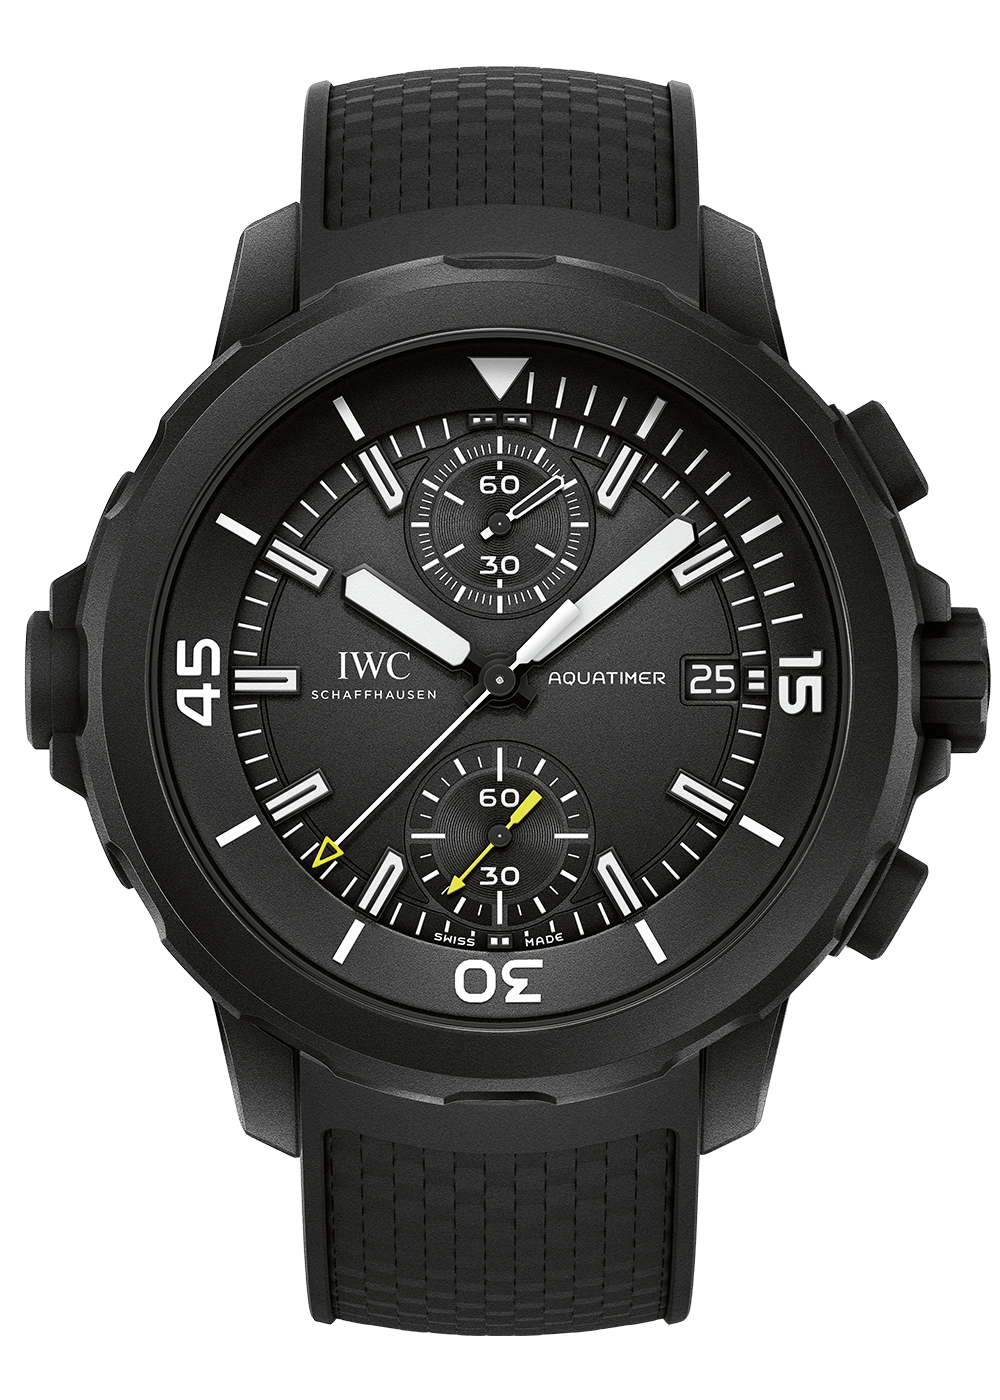 IW379502 Aquatimer Chronograph Edition Galapagos Islands_627155